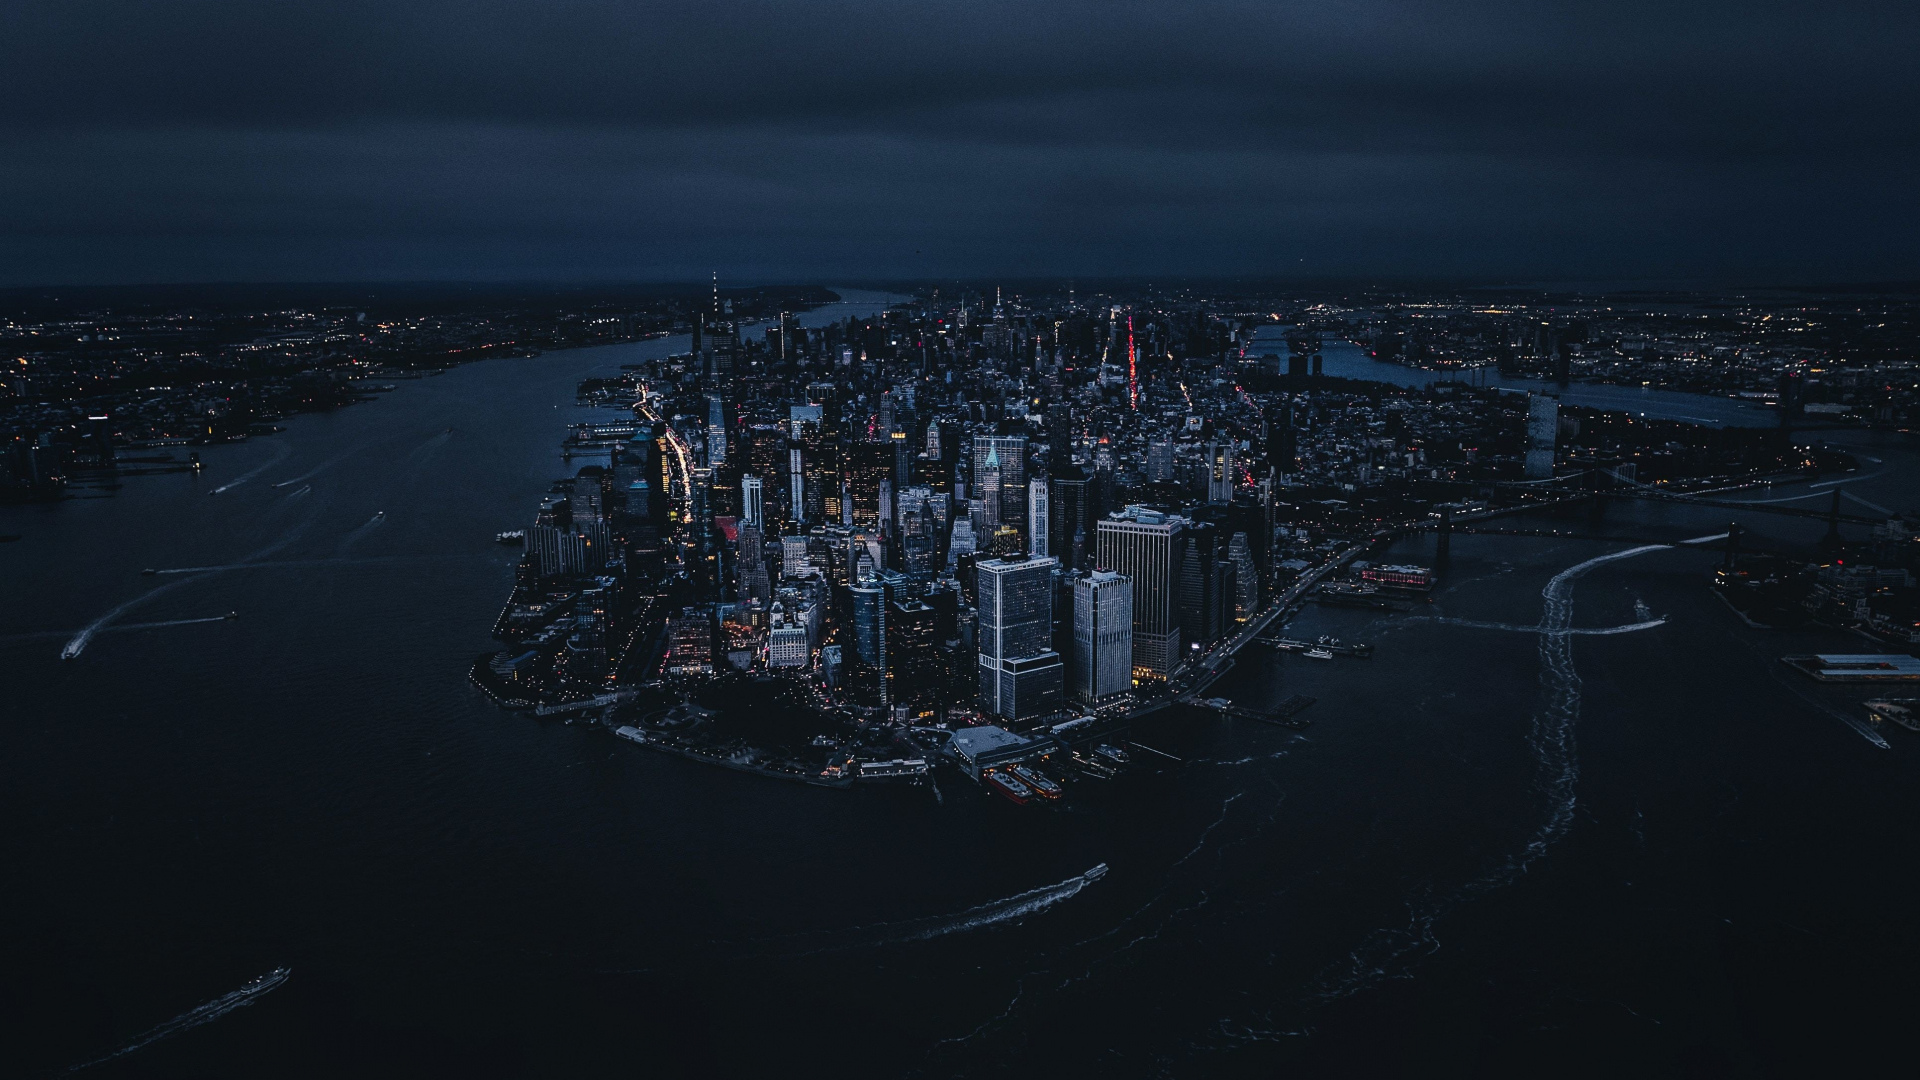 Download 1920x1080 Wallpaper New York City Aerial View